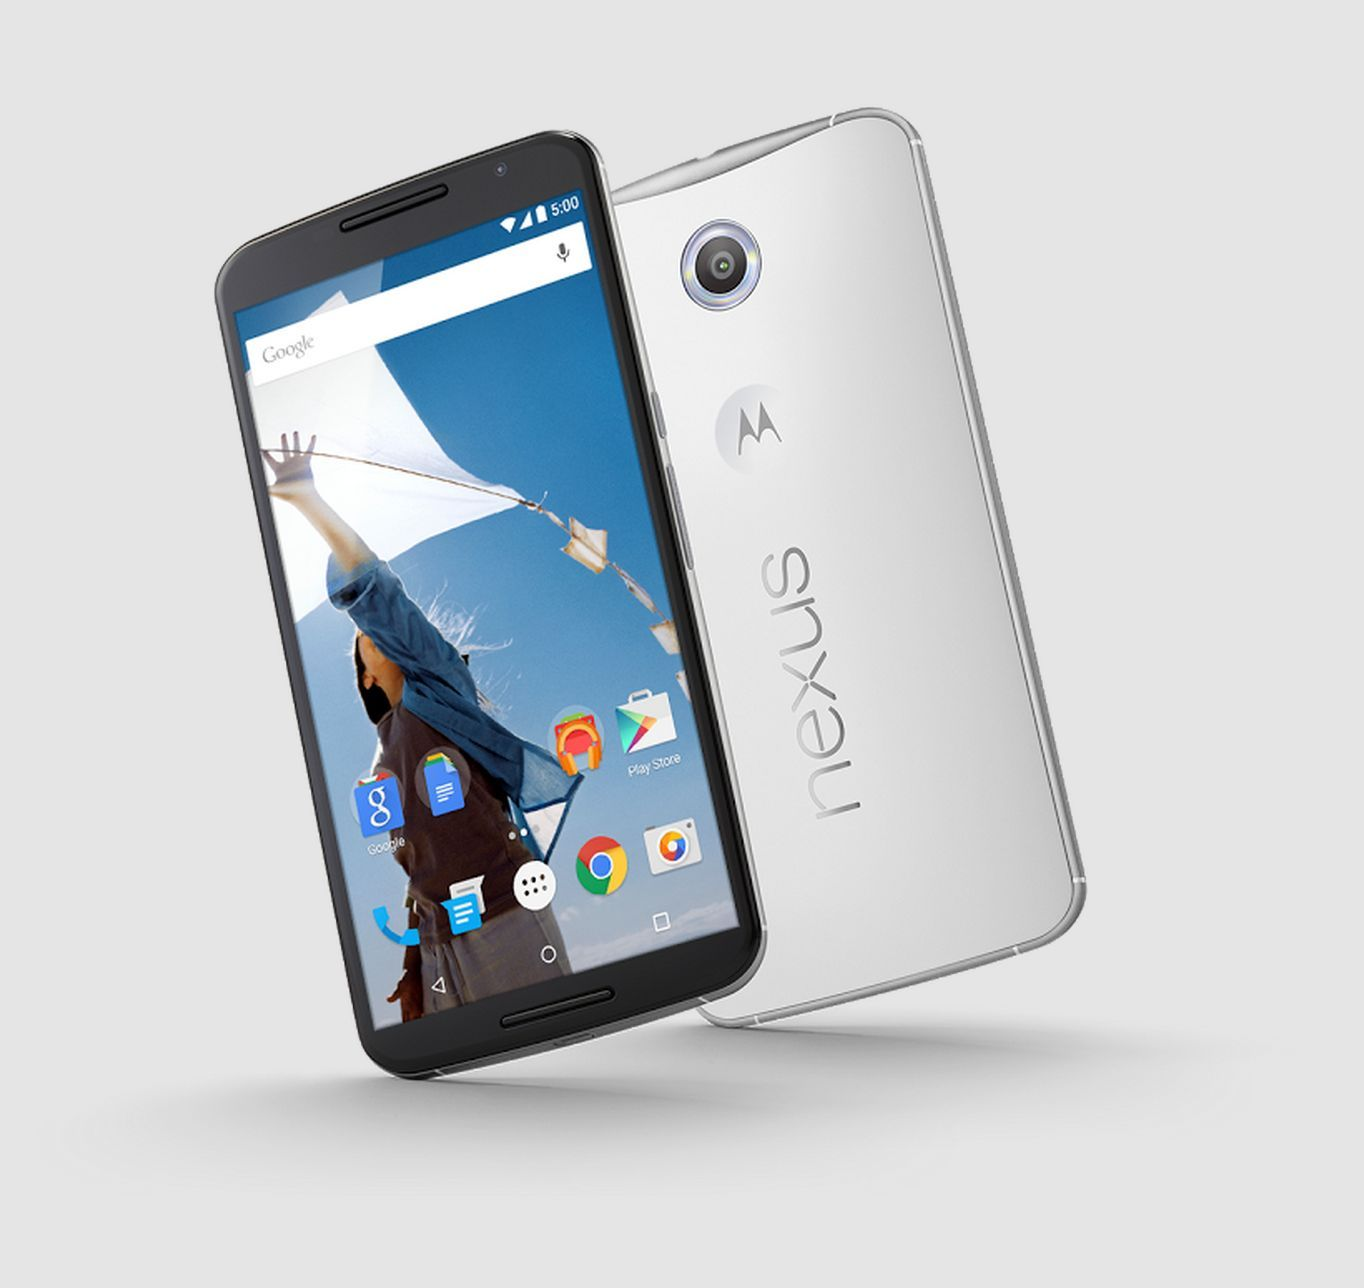 nexus 6, at&t, android 5.1.1 update, software, update, usa